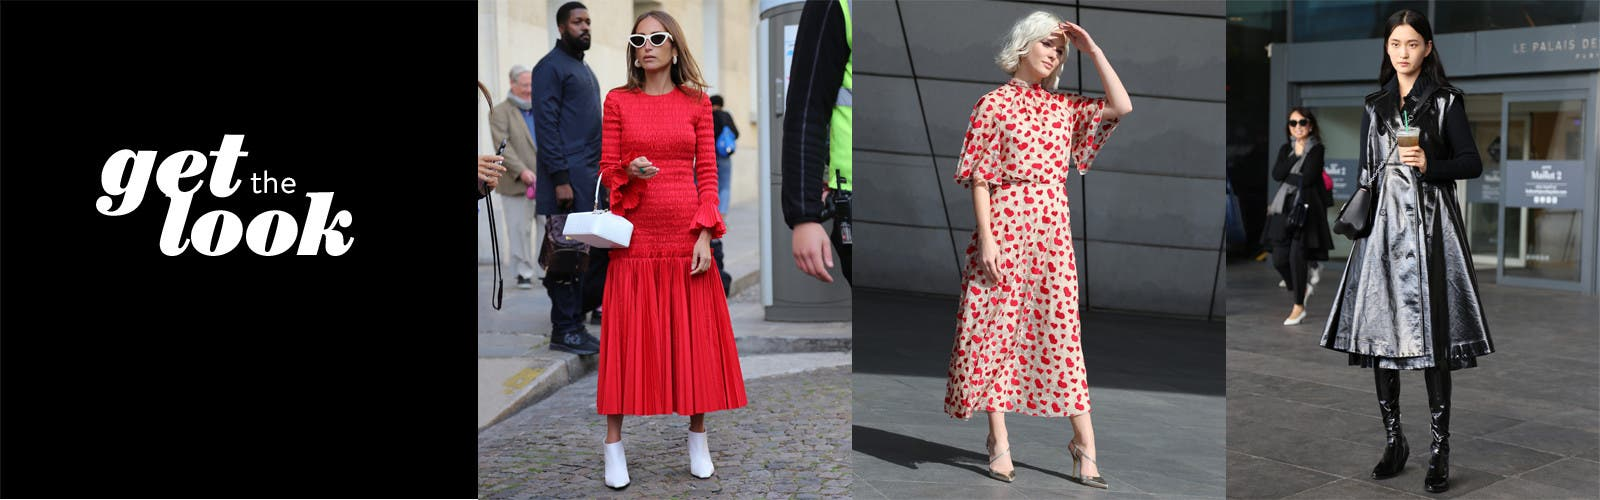 Get the look: women's clothing.